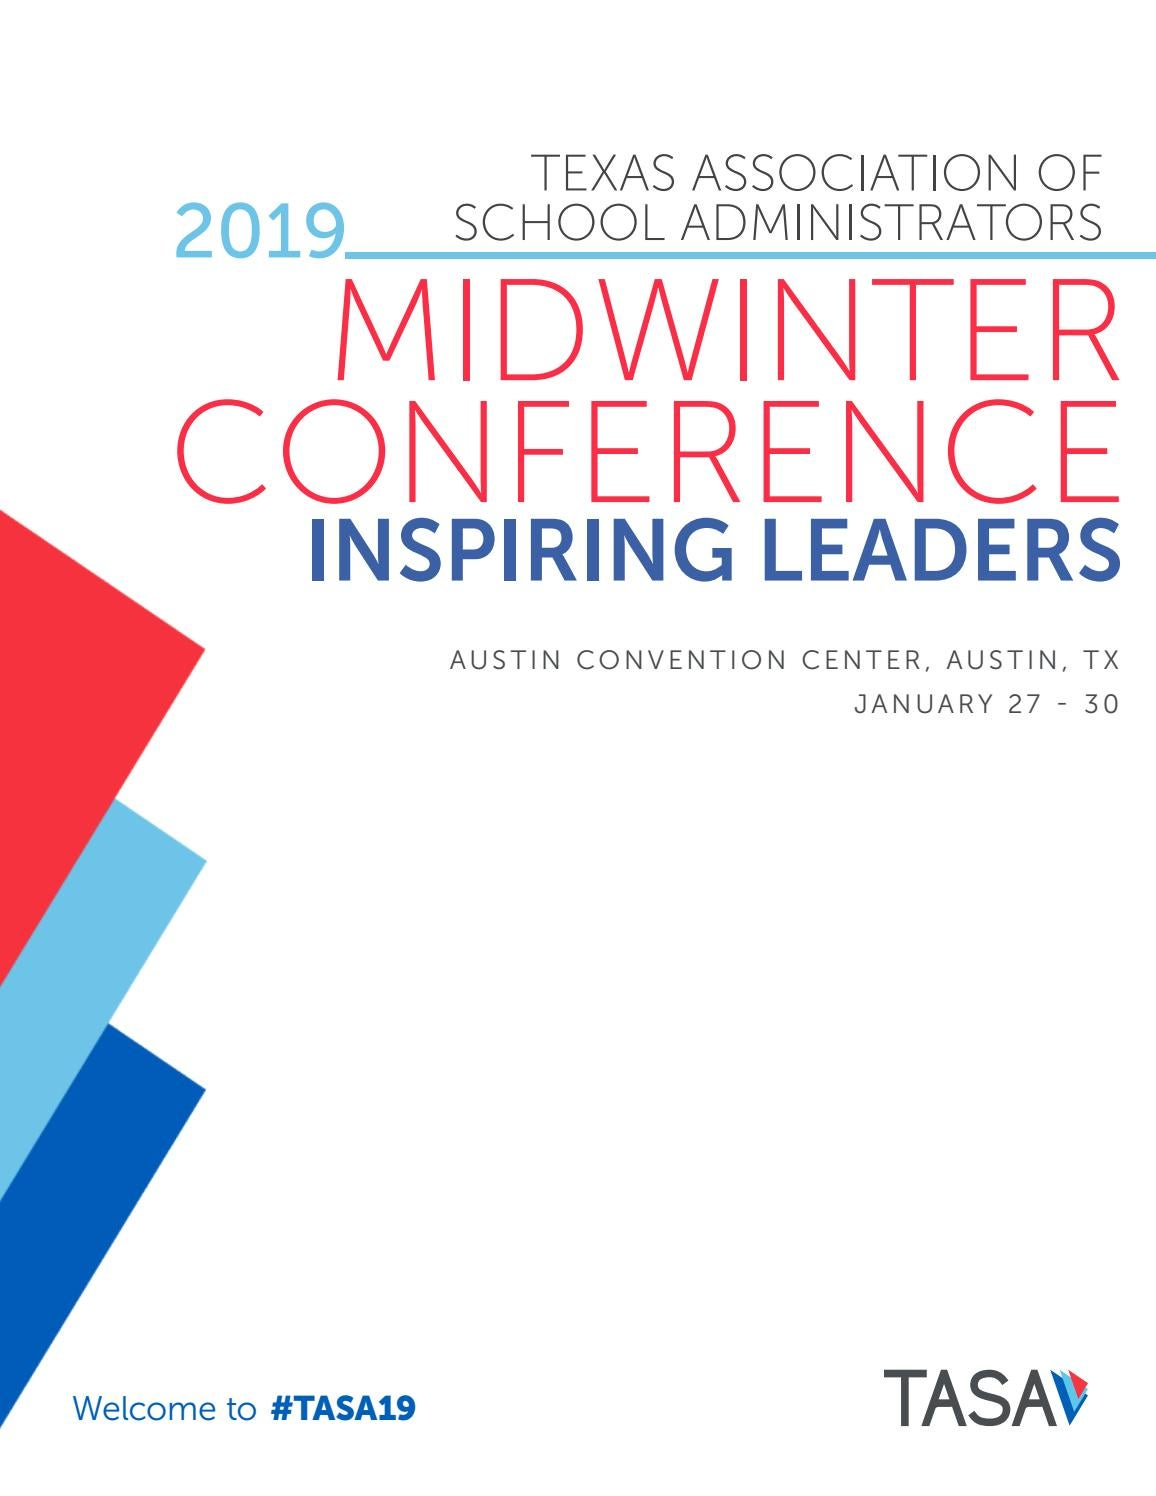 2019 Midwinter Conference Program by Texas Association of